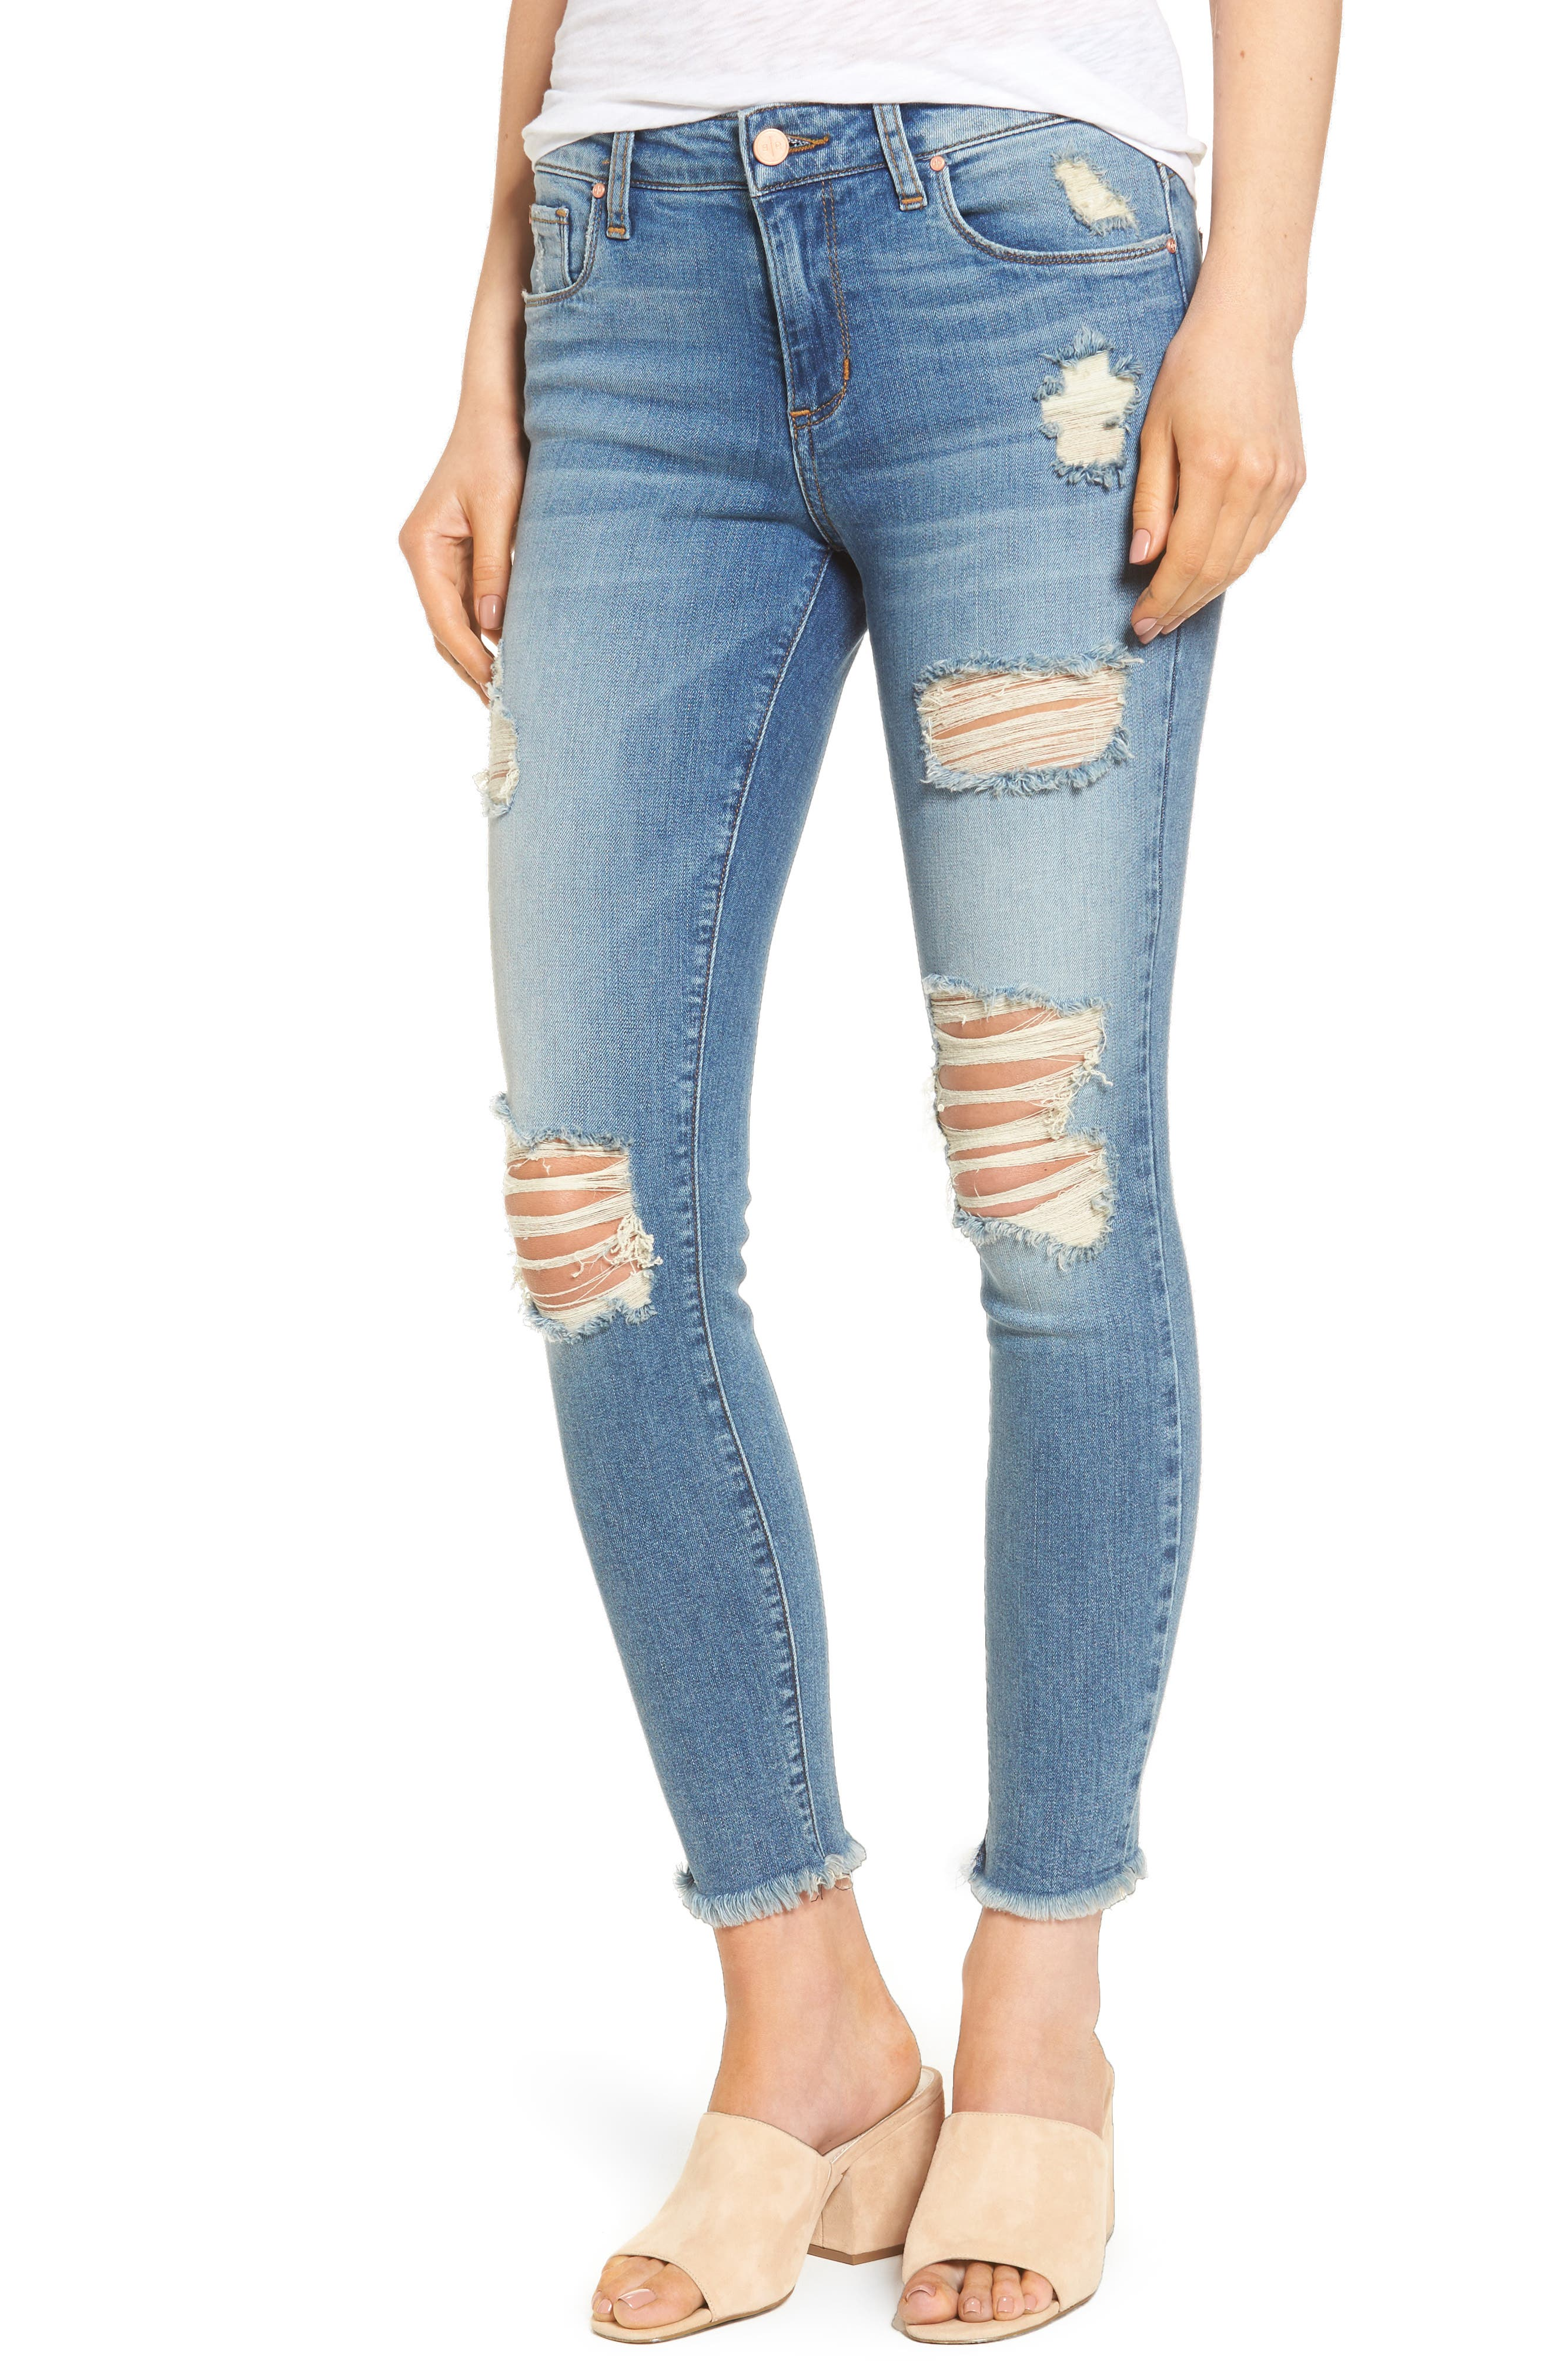 Alternate Image 1 Selected - BP. Ripped Crop Skinny Jeans